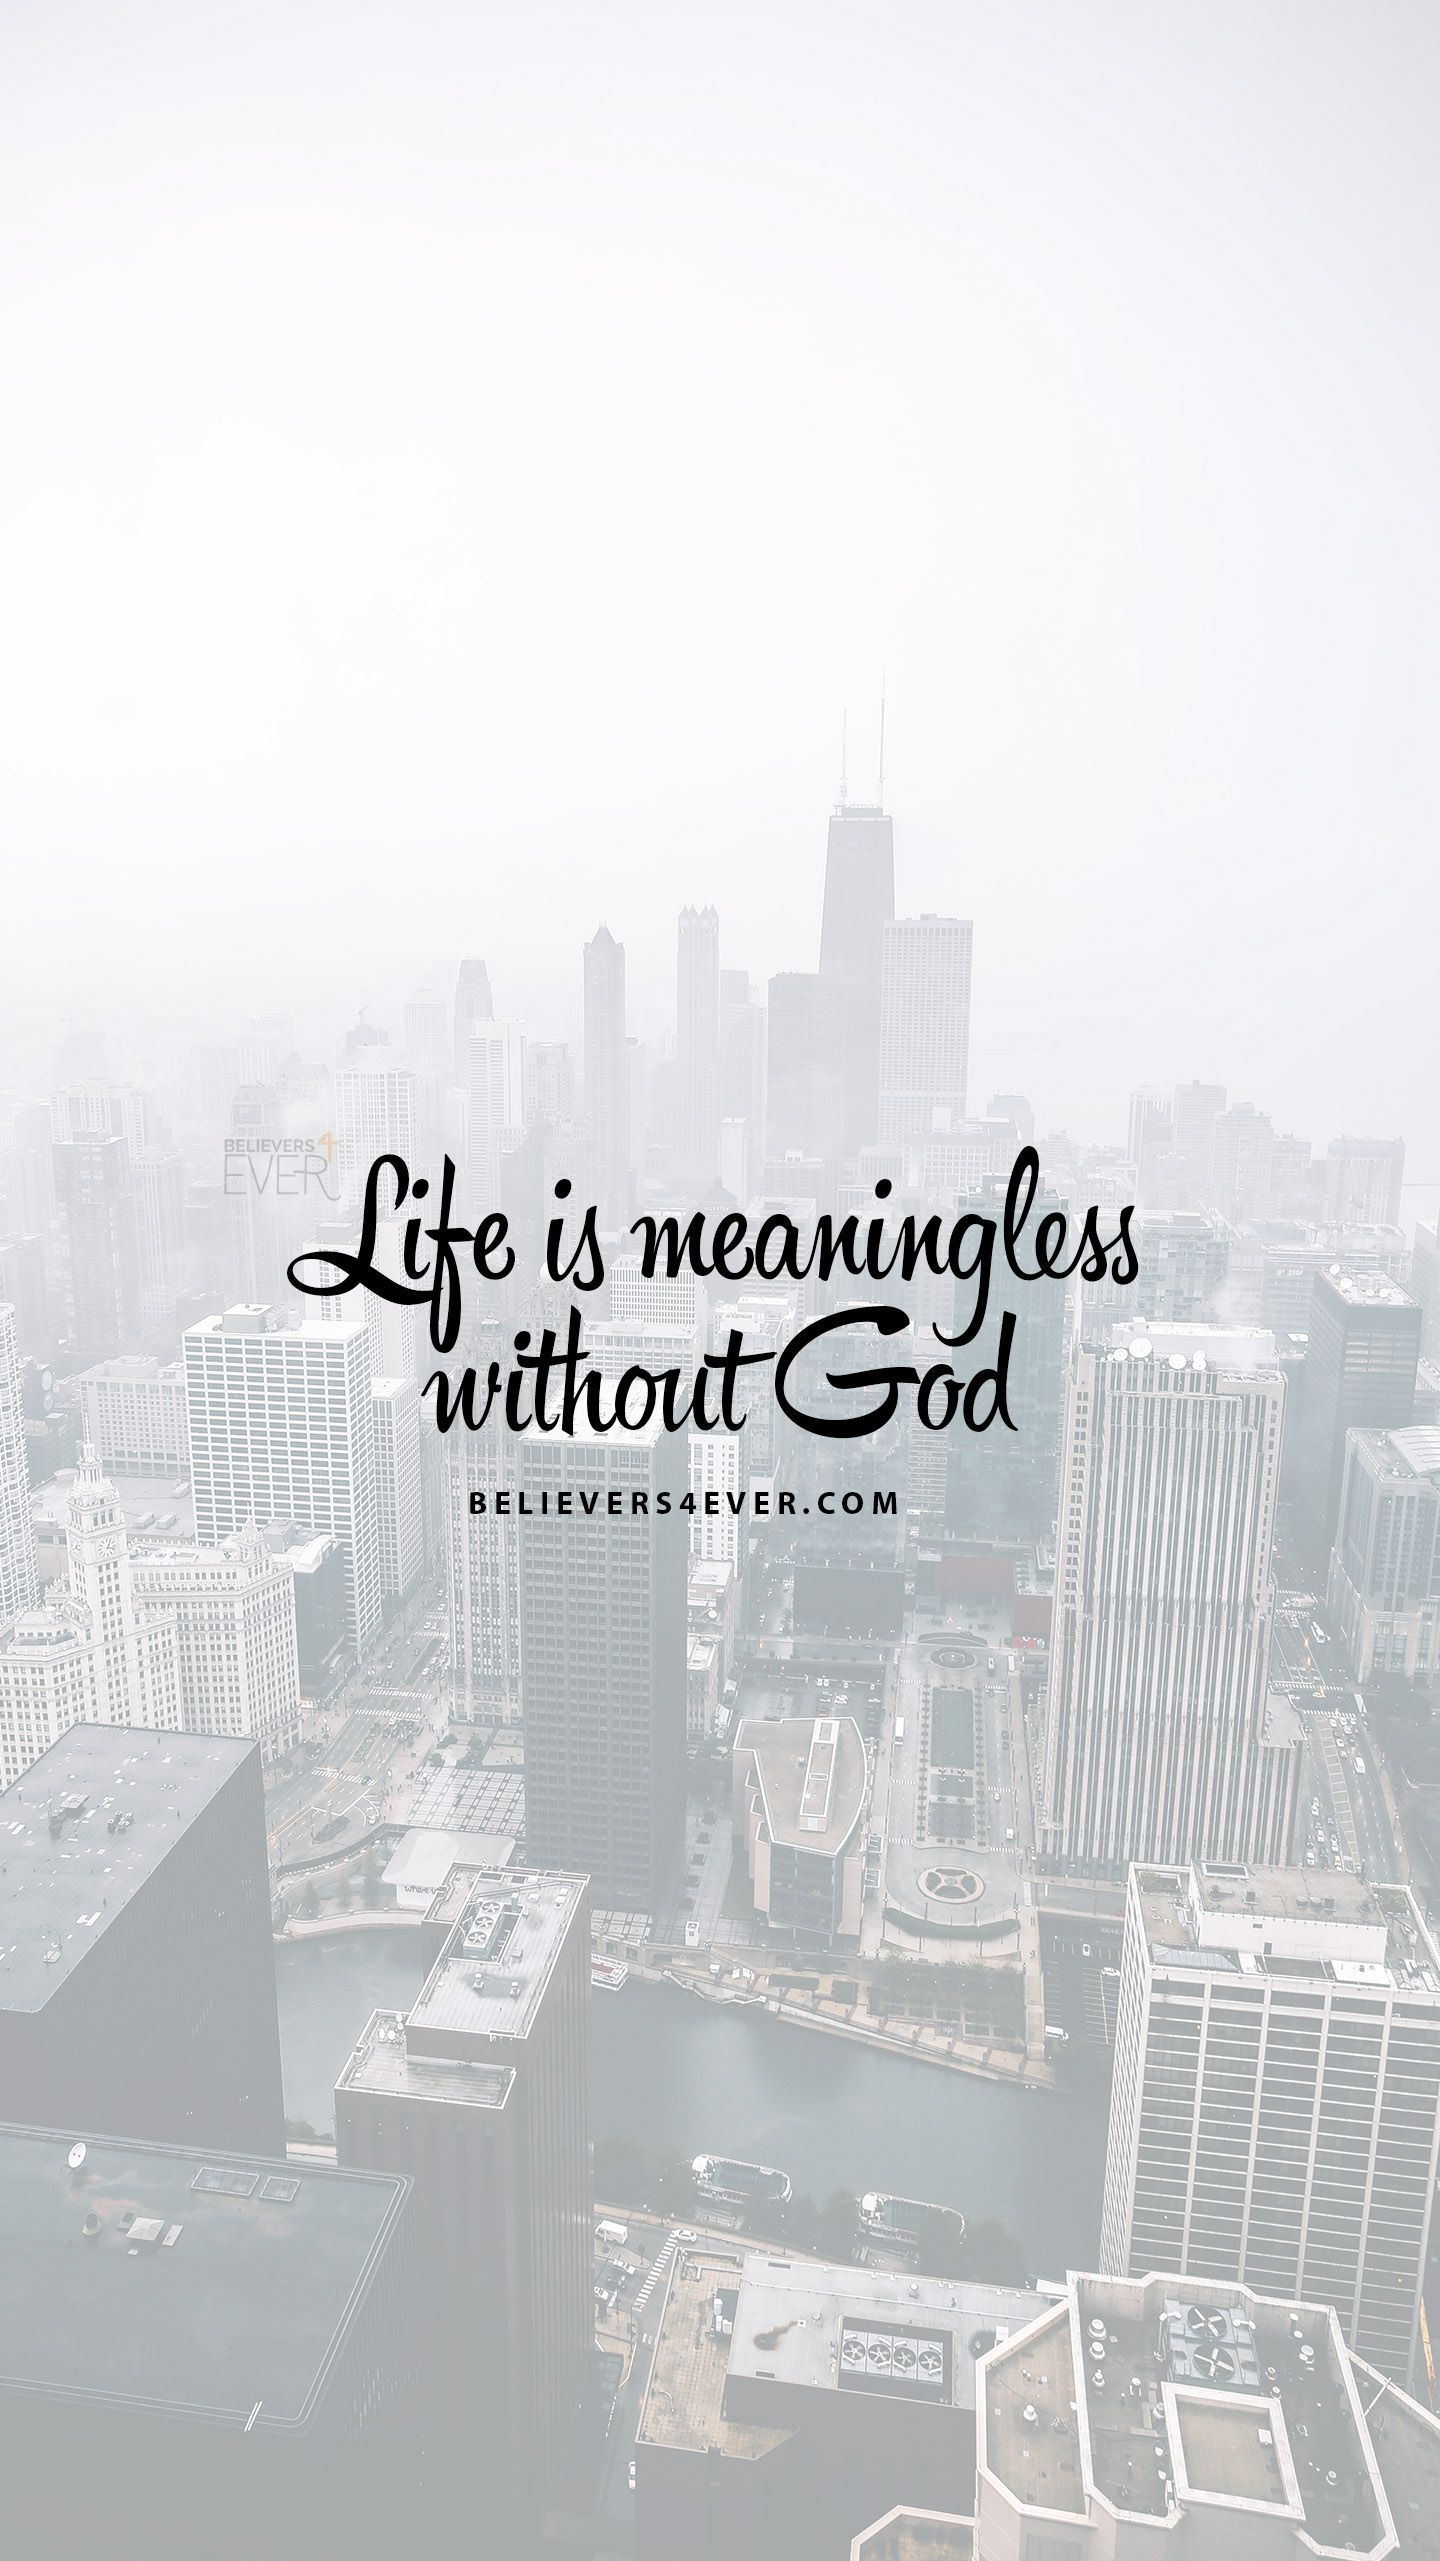 Life Is Meaningless Without God Believers4ever Com Iphone Wallpaper Quotes Bible Bible Quotes Wallpaper Quotes